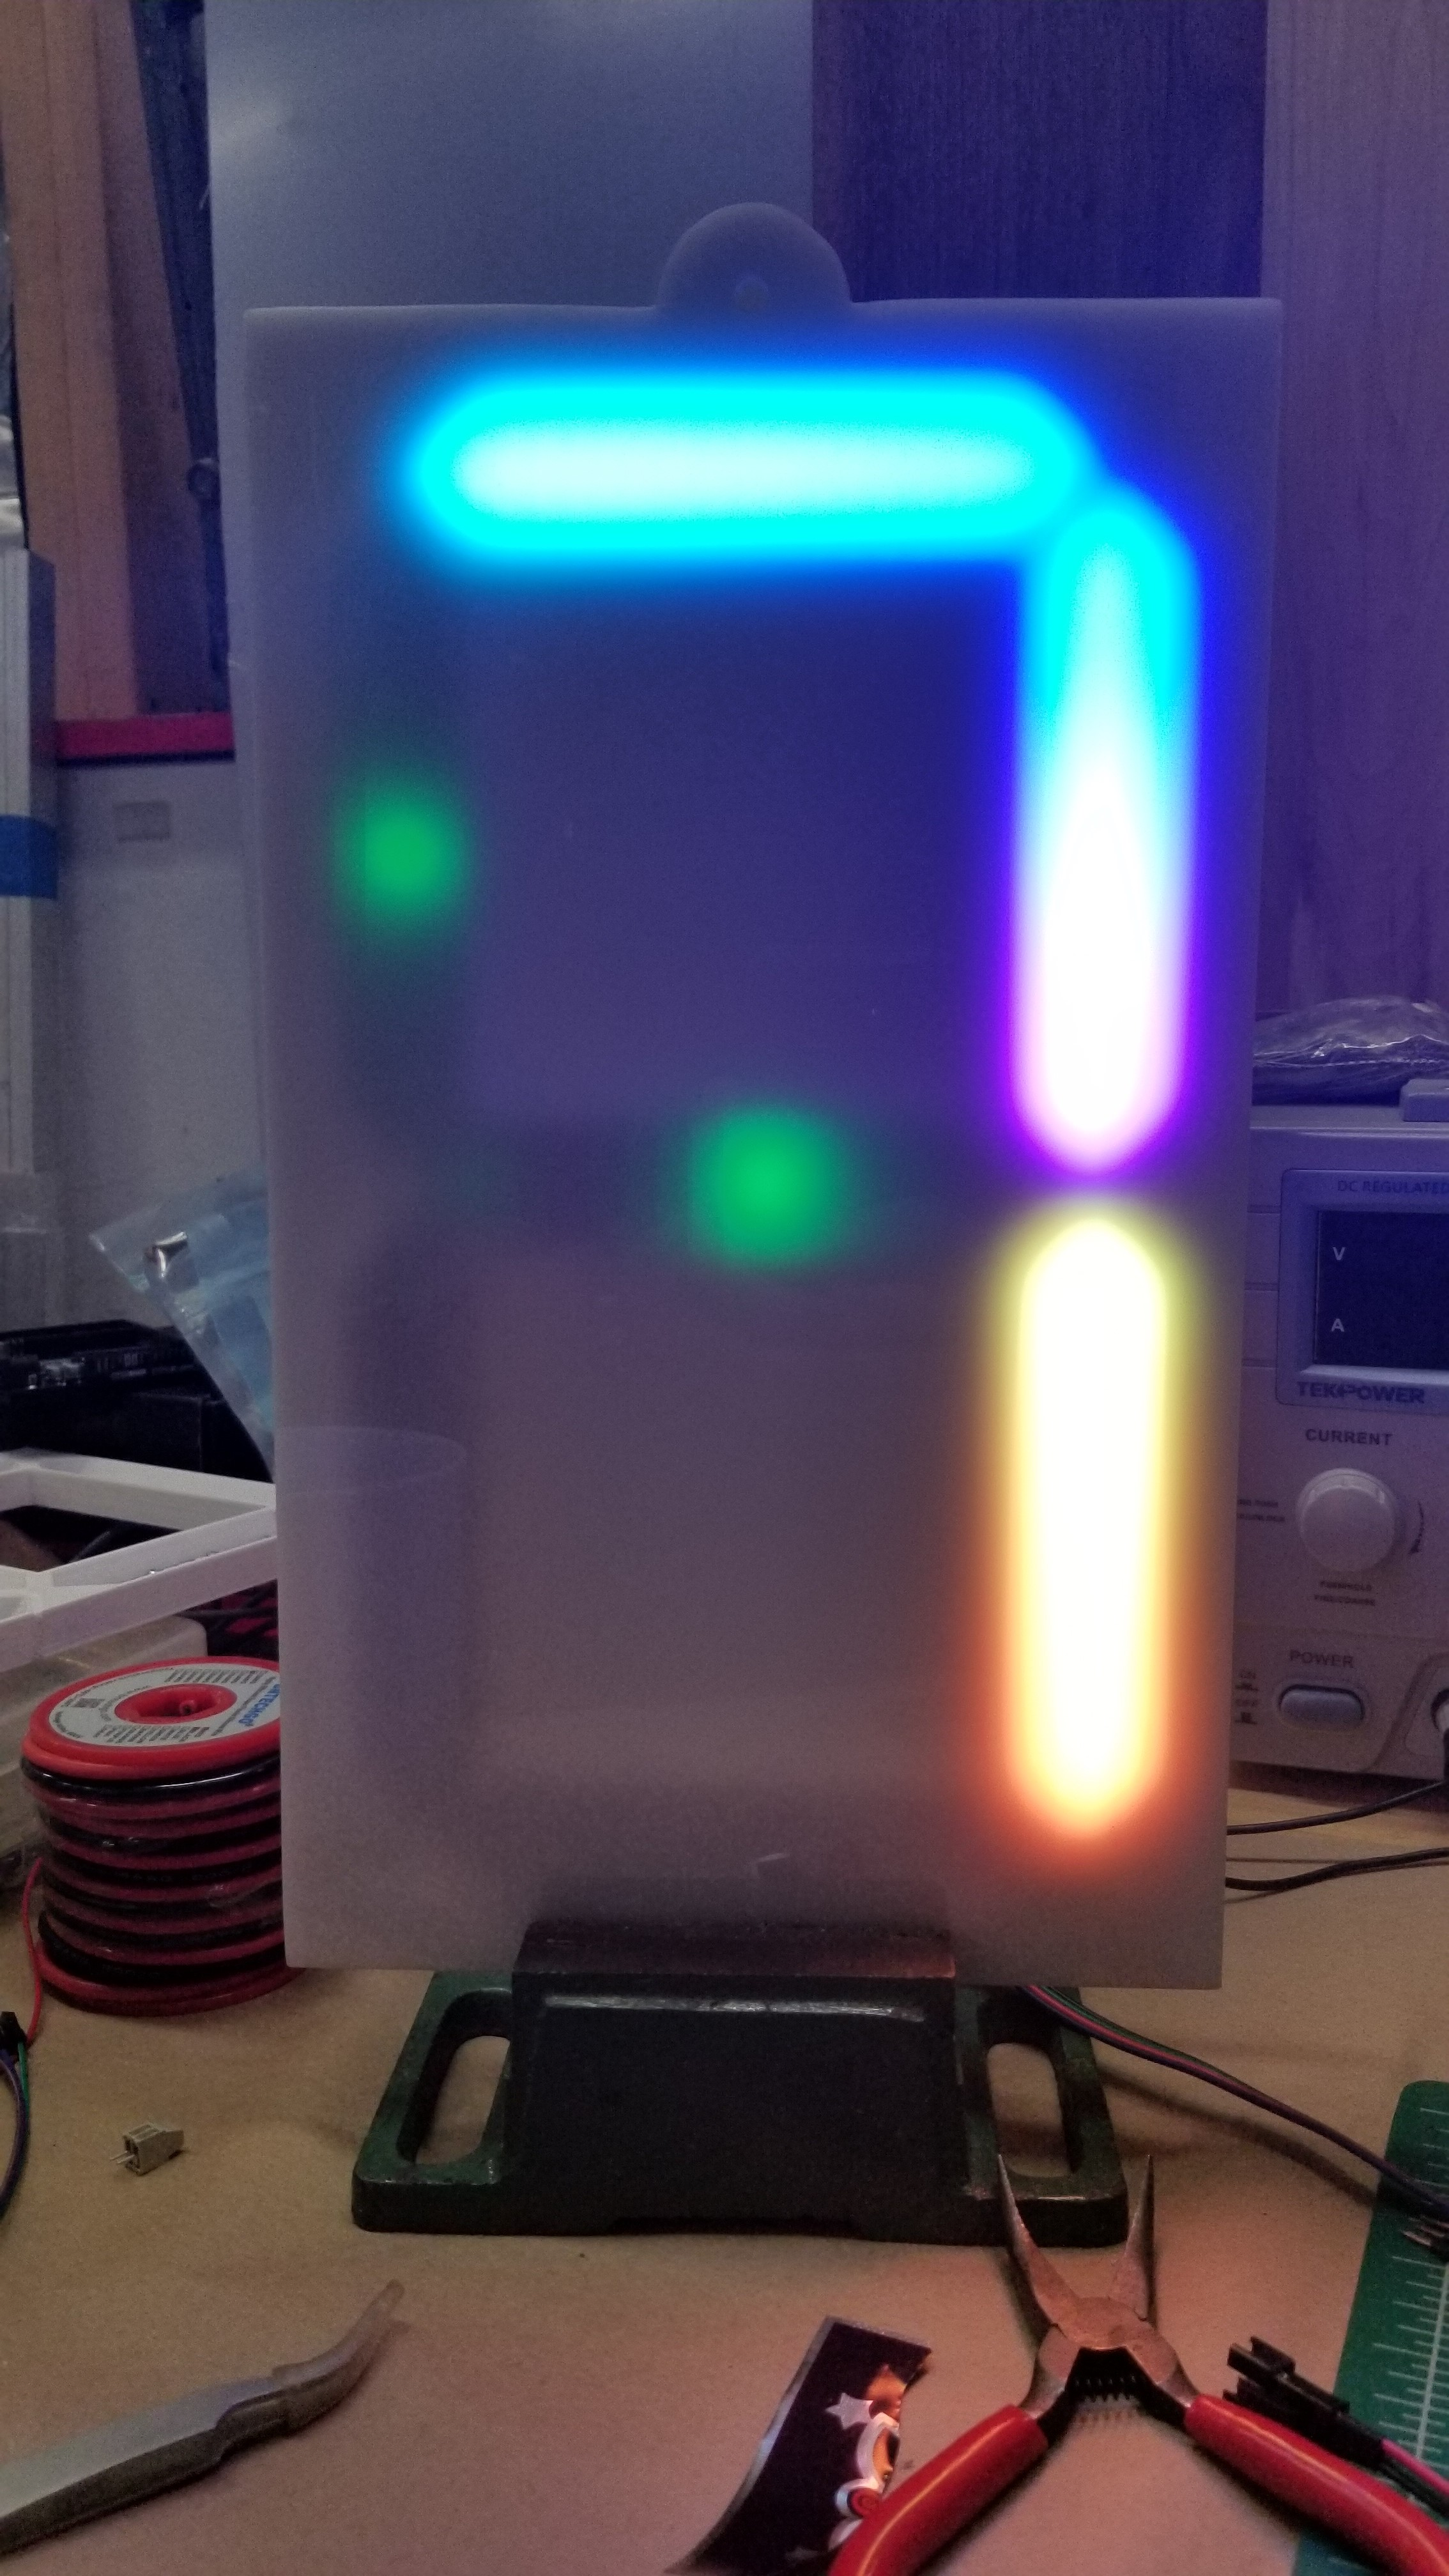 Testing it out on my test fixture. See the green LED's?